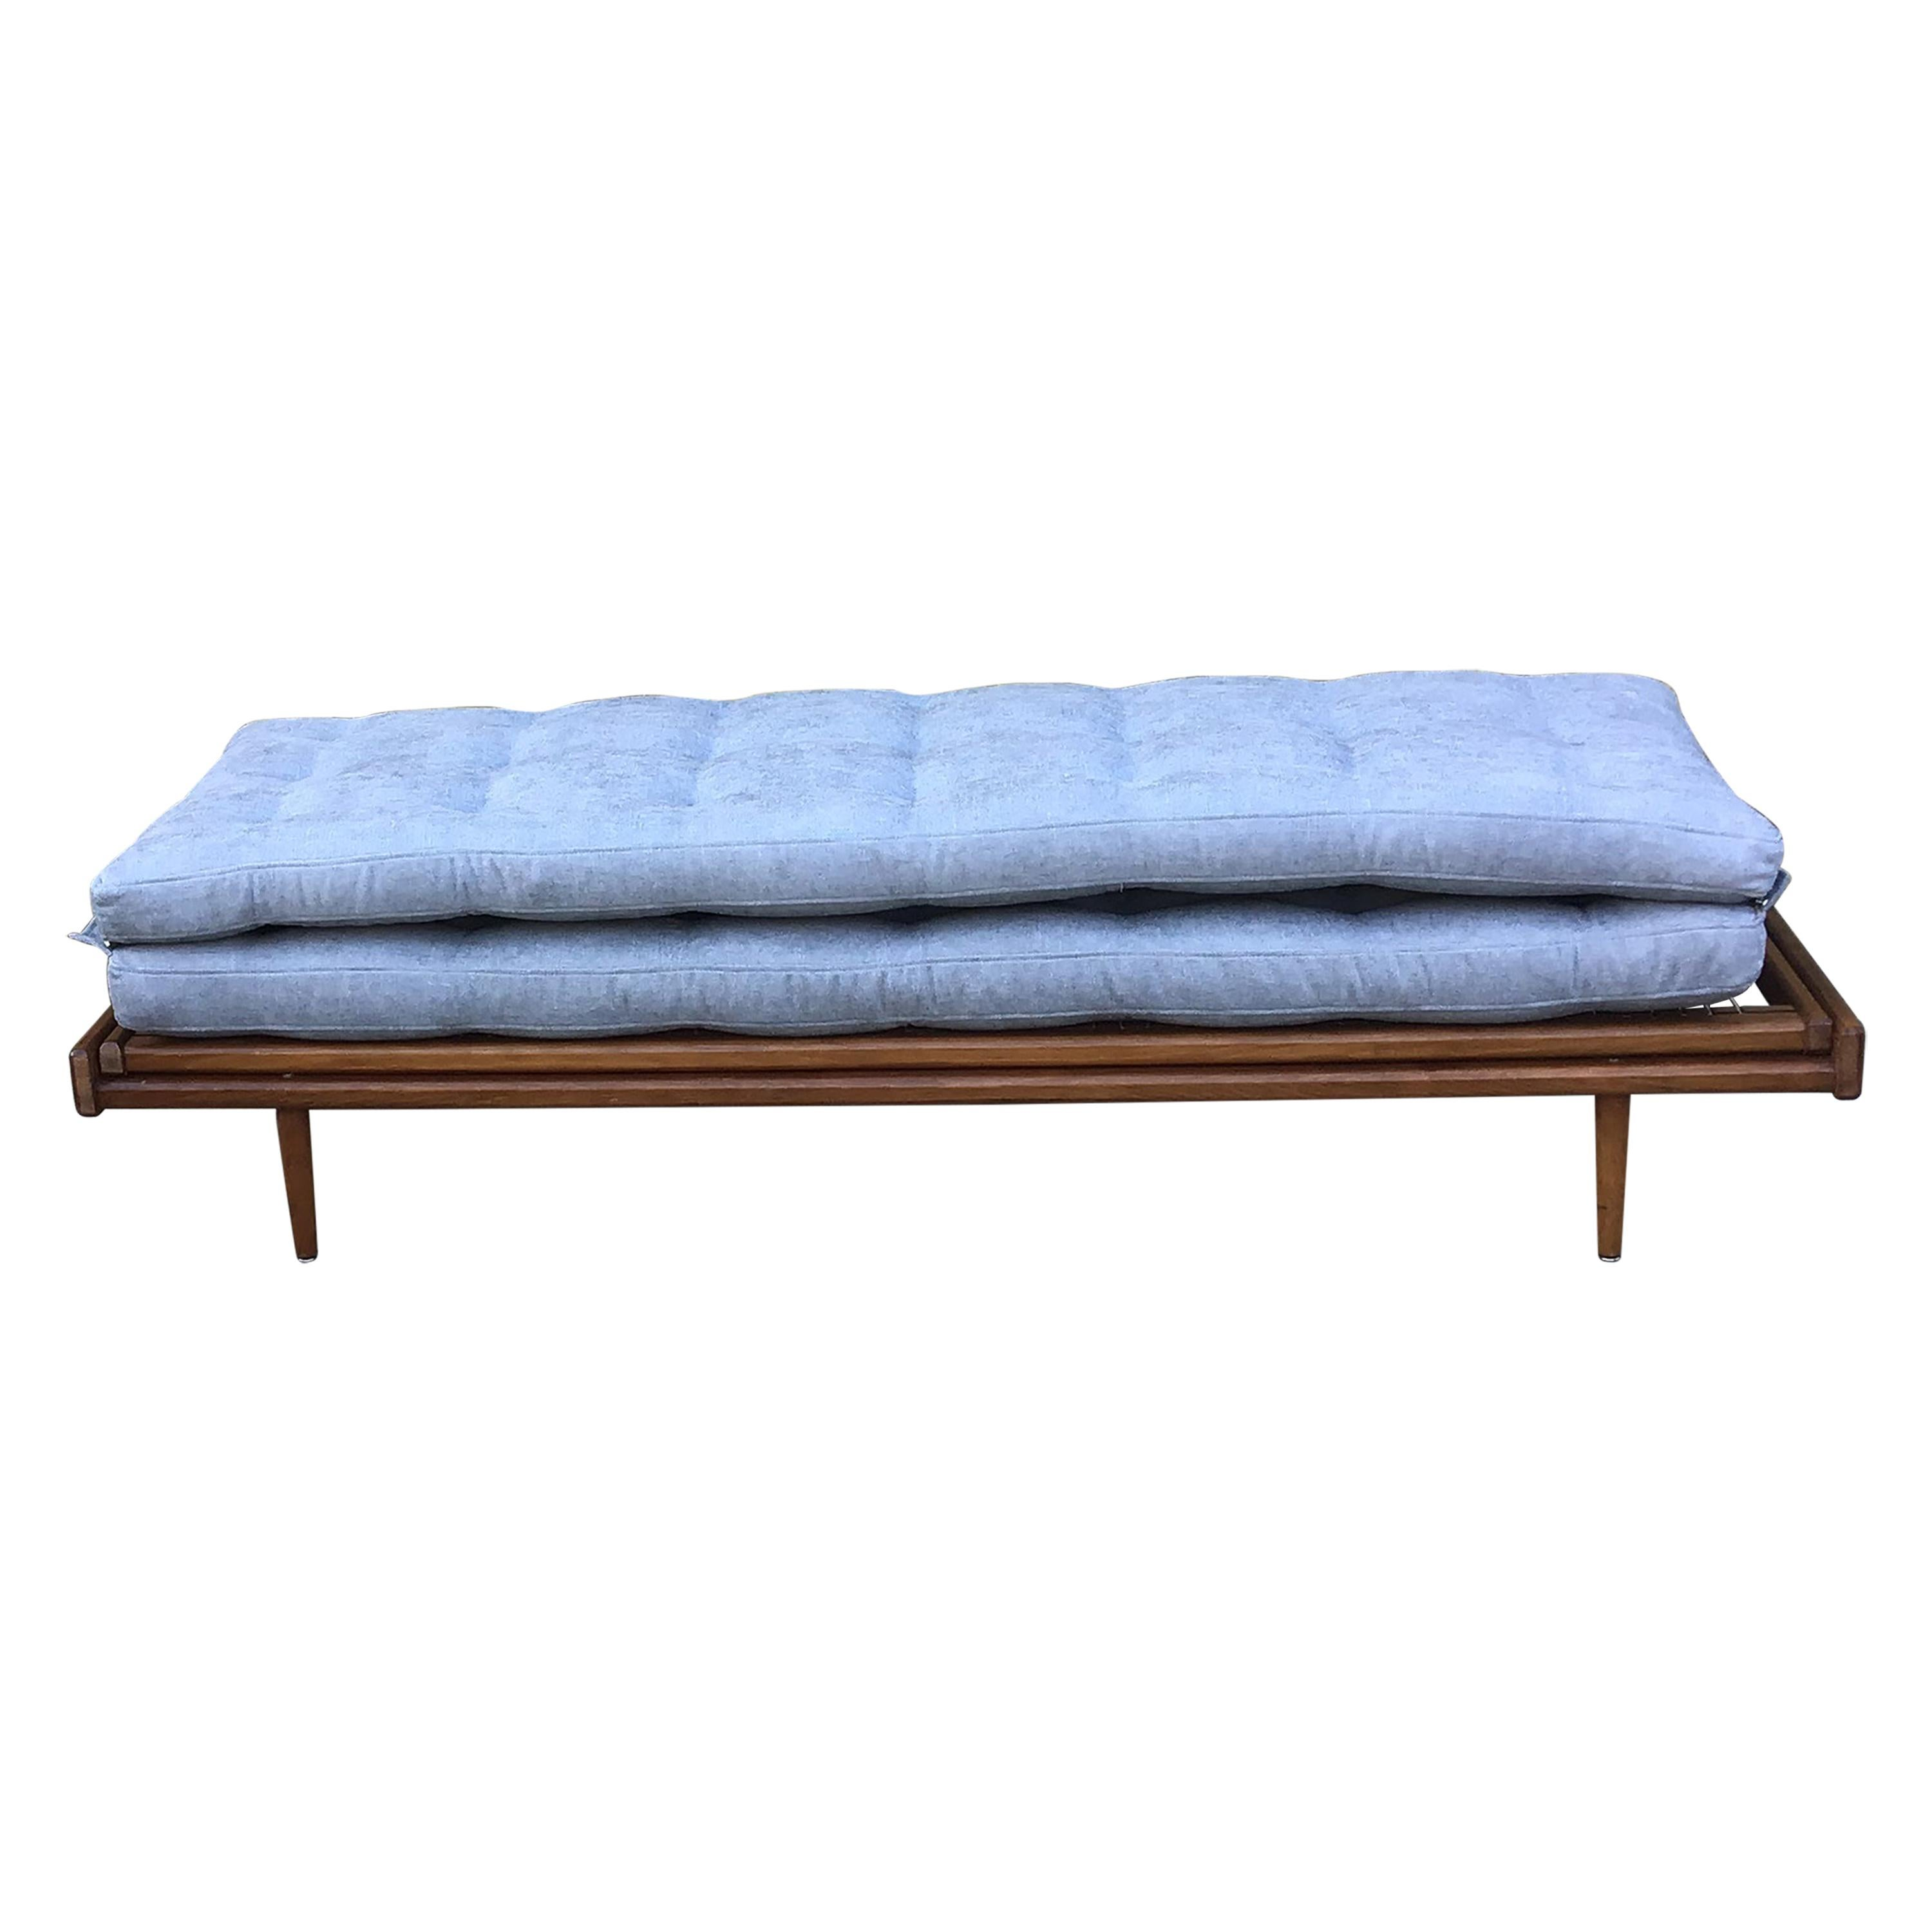 1960s French Daybed by Georges Tigien/1960s French Sofabed/1960s Blue Sofa